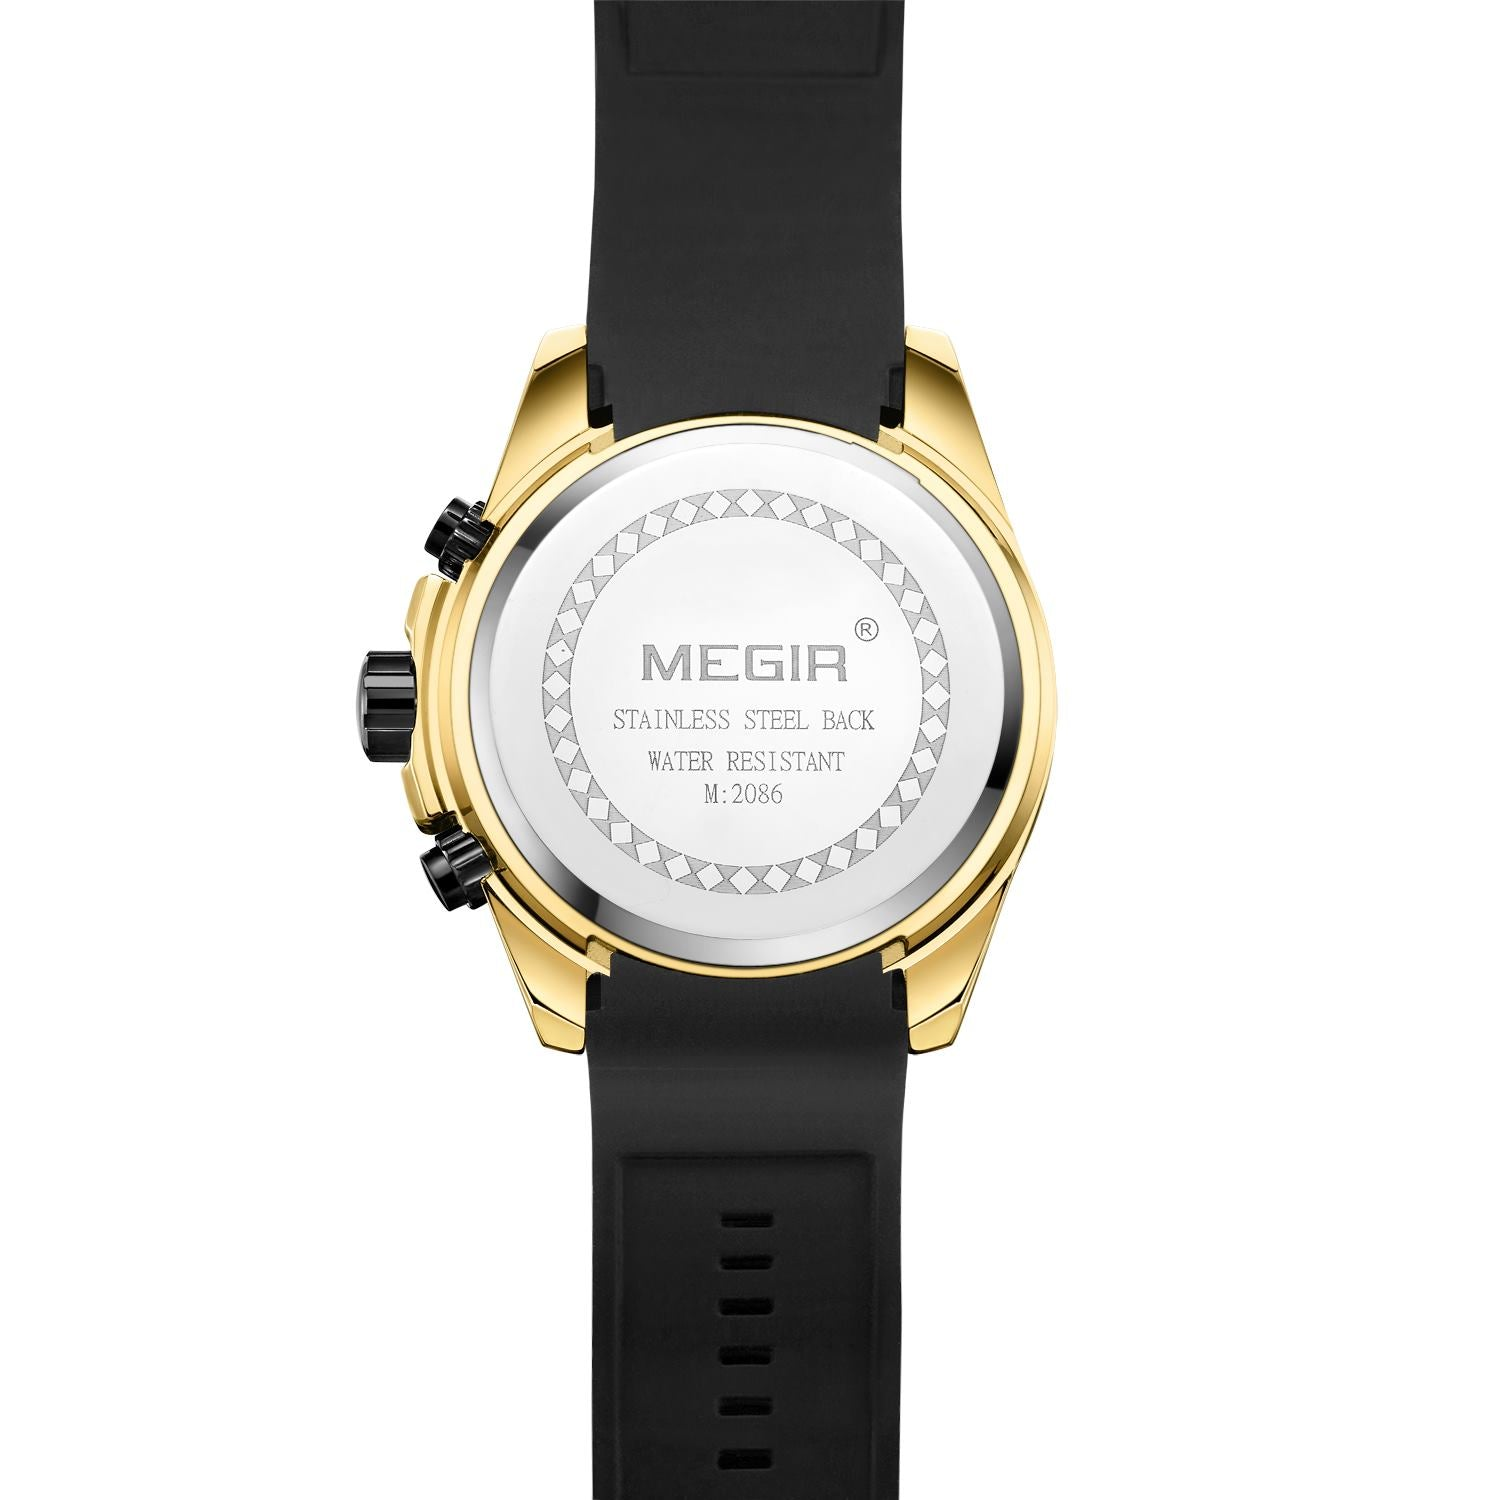 MEGIR men's sports chronograph watch 2086 - MEGIR